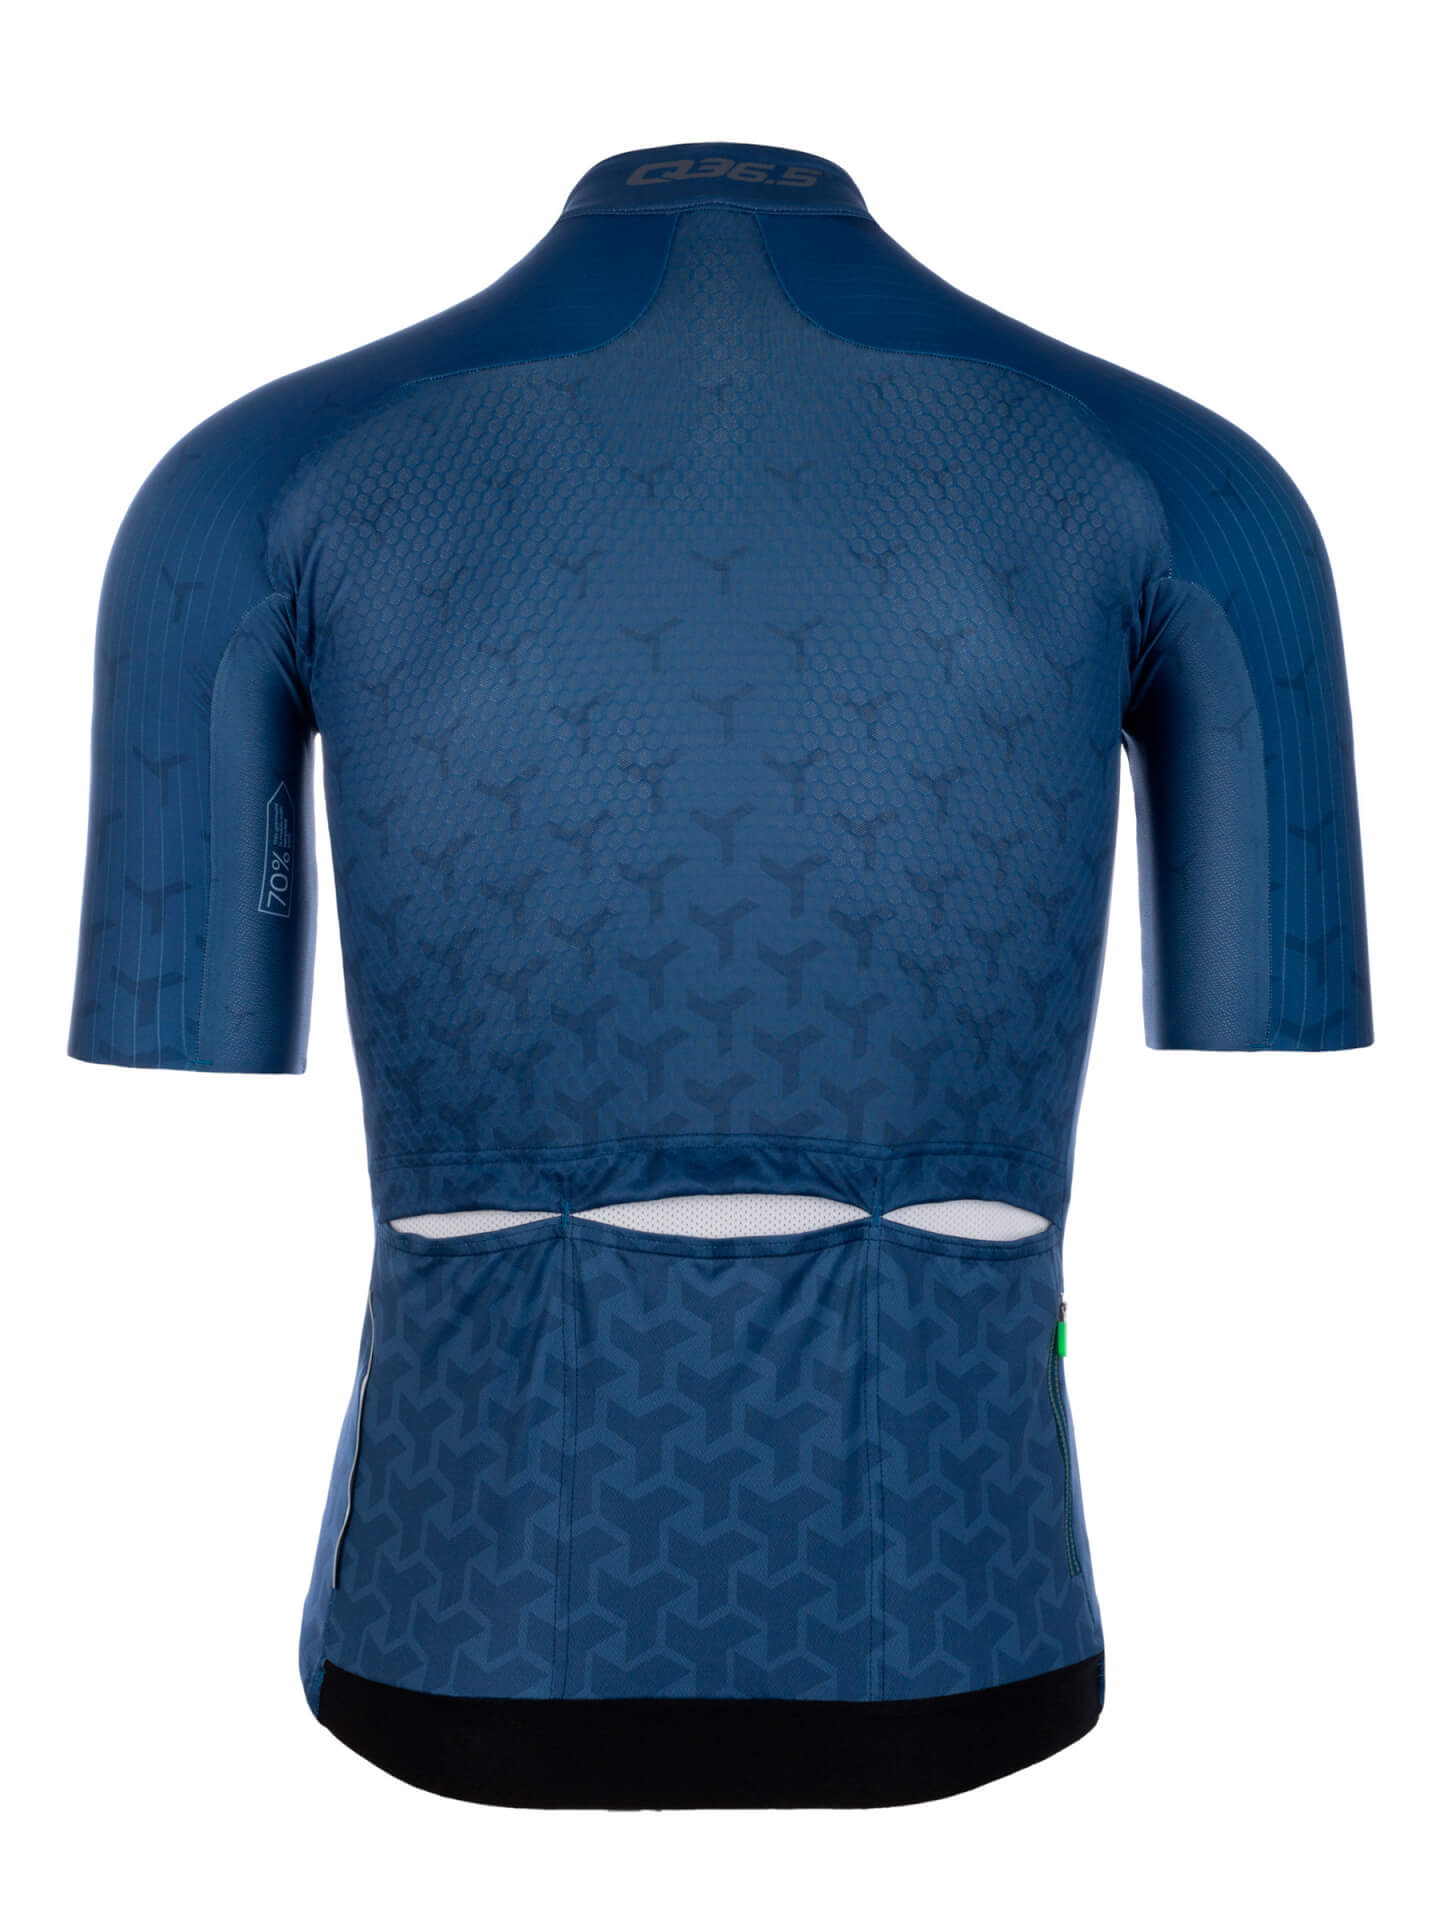 Maillot manches courtes R2 Y bleu marine